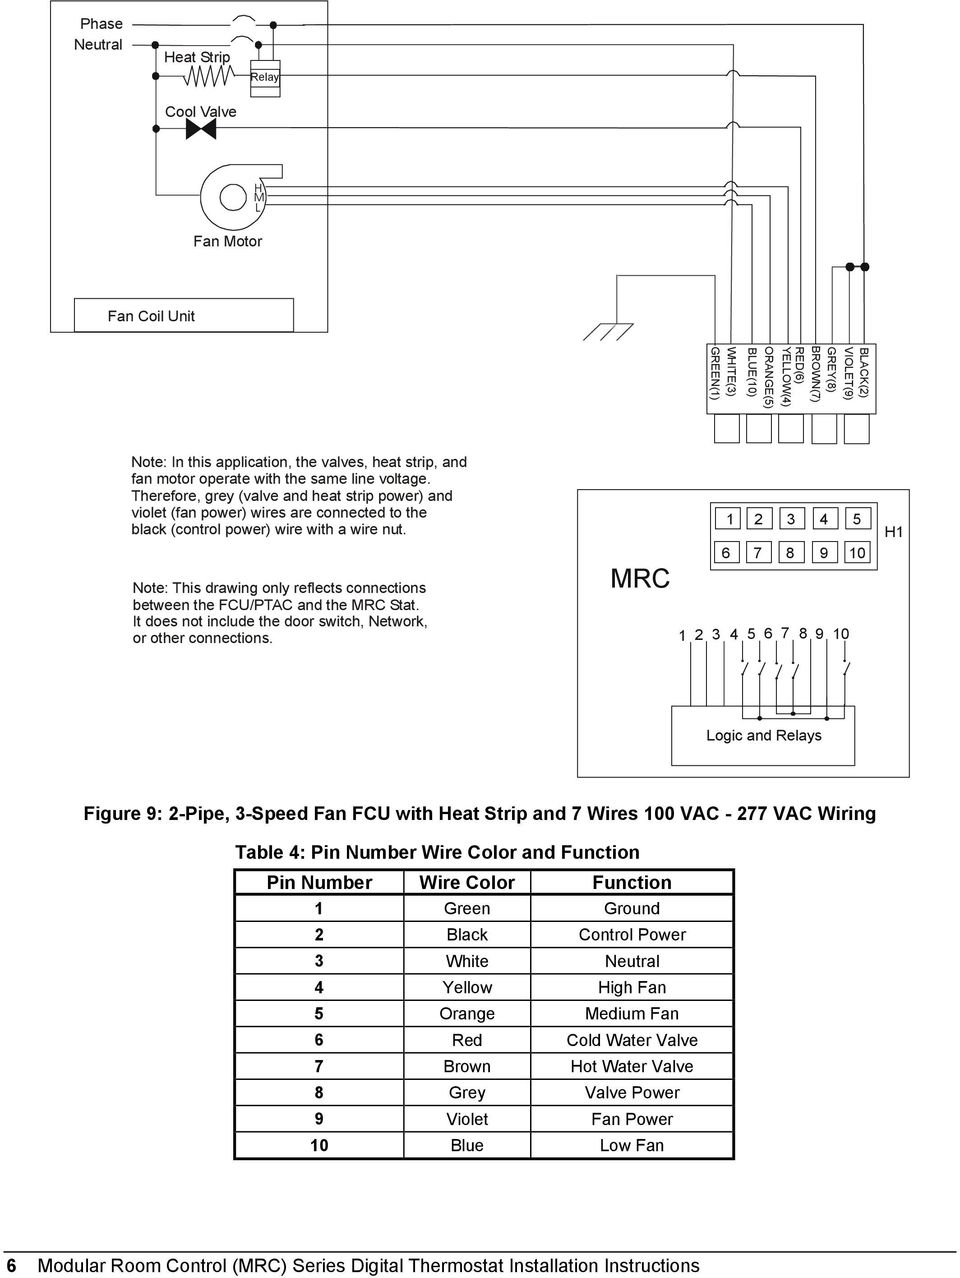 medium resolution of modular room control mrc series digital thermostat pdf figure 6 4 when wiring a differential thermostat two wires